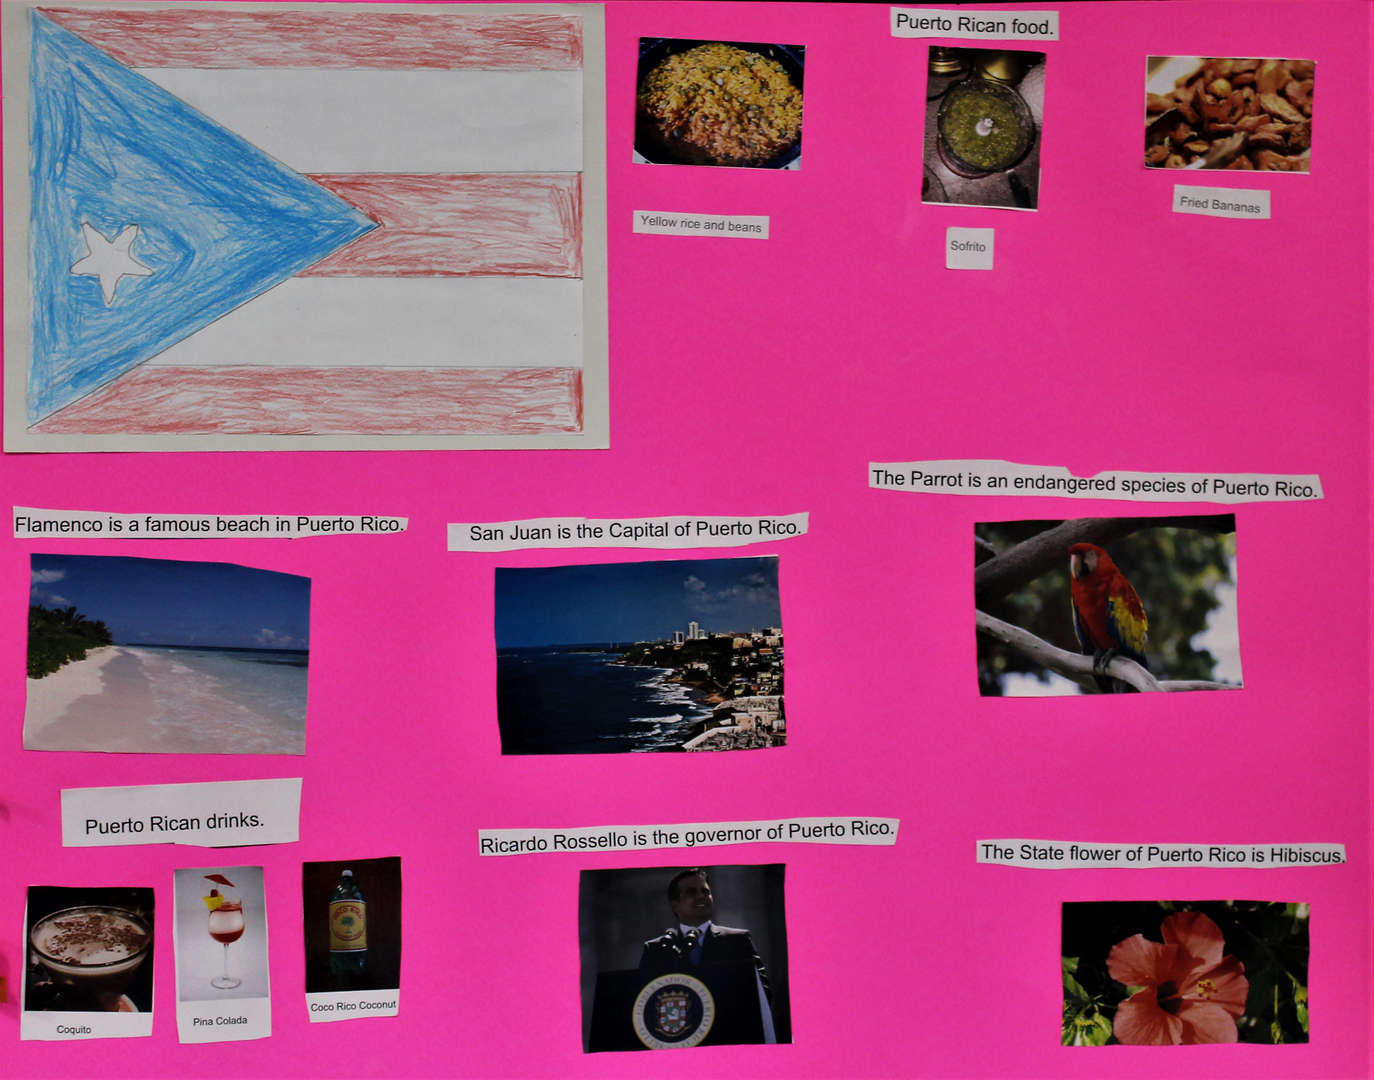 Students who studied Puerto Rico made a poster board about food, habitat and flowers.